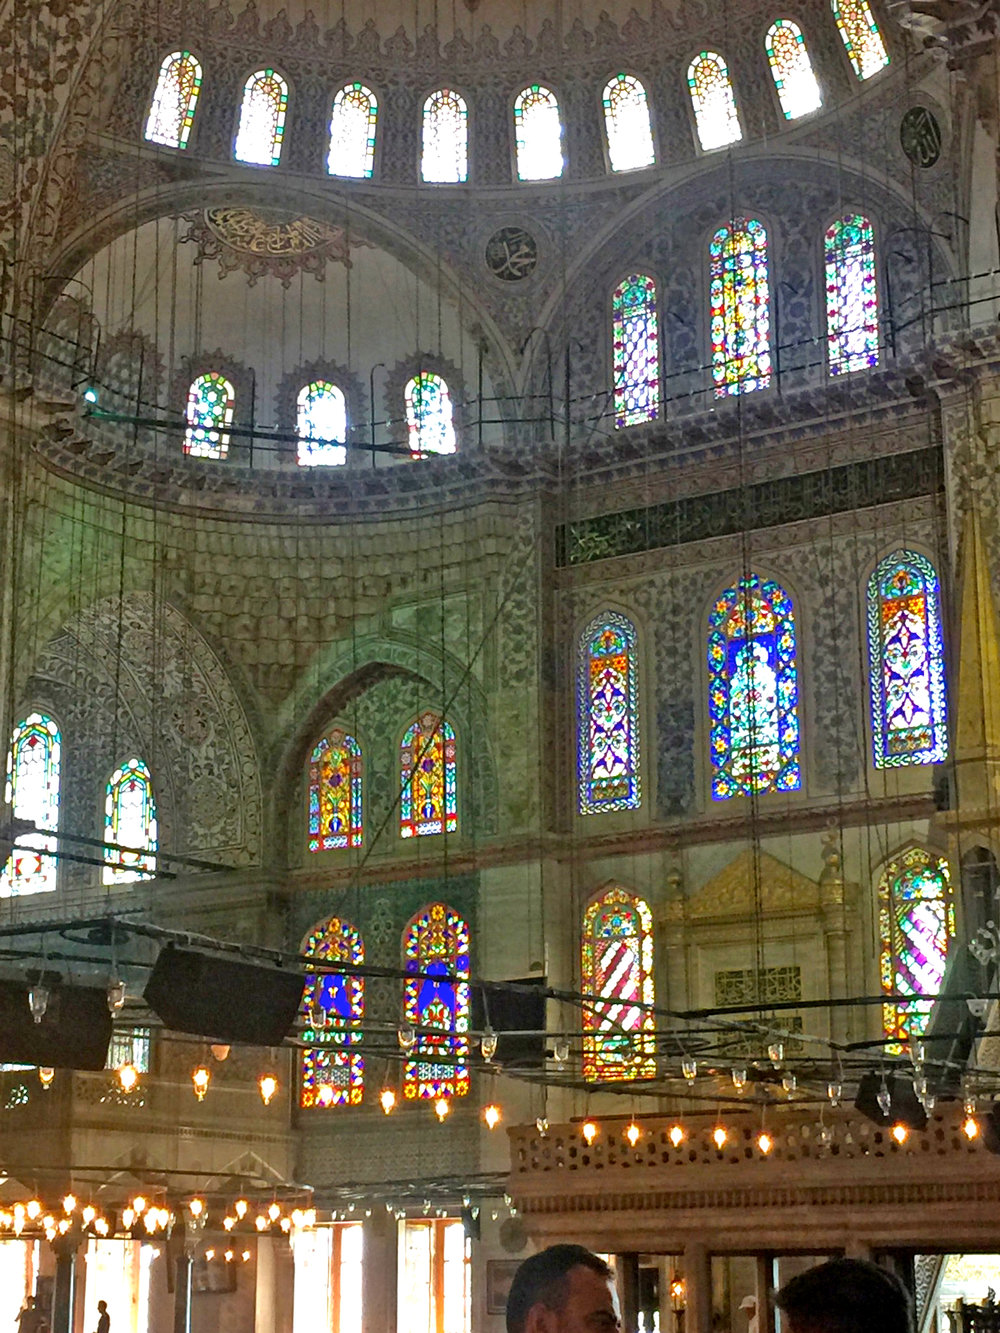 The beautiful windows of the Blue Mosque